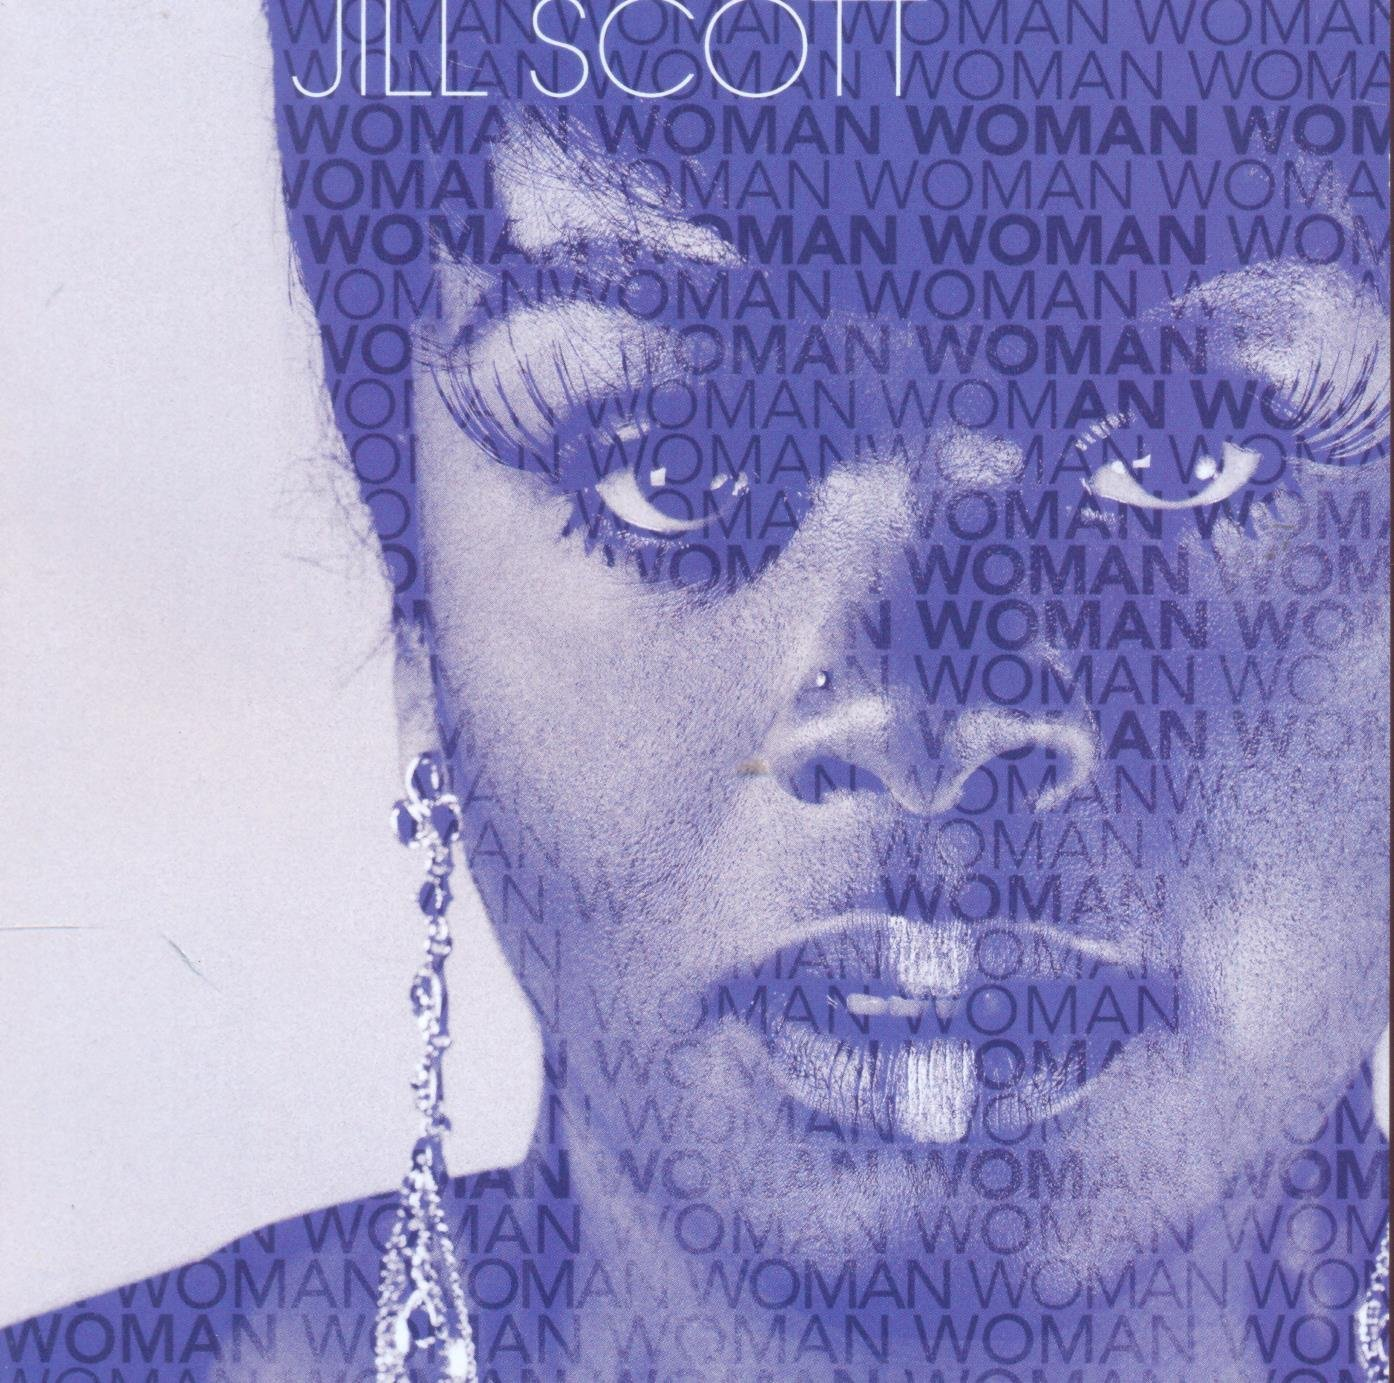 Ranking Jill Scott's First Five Albums